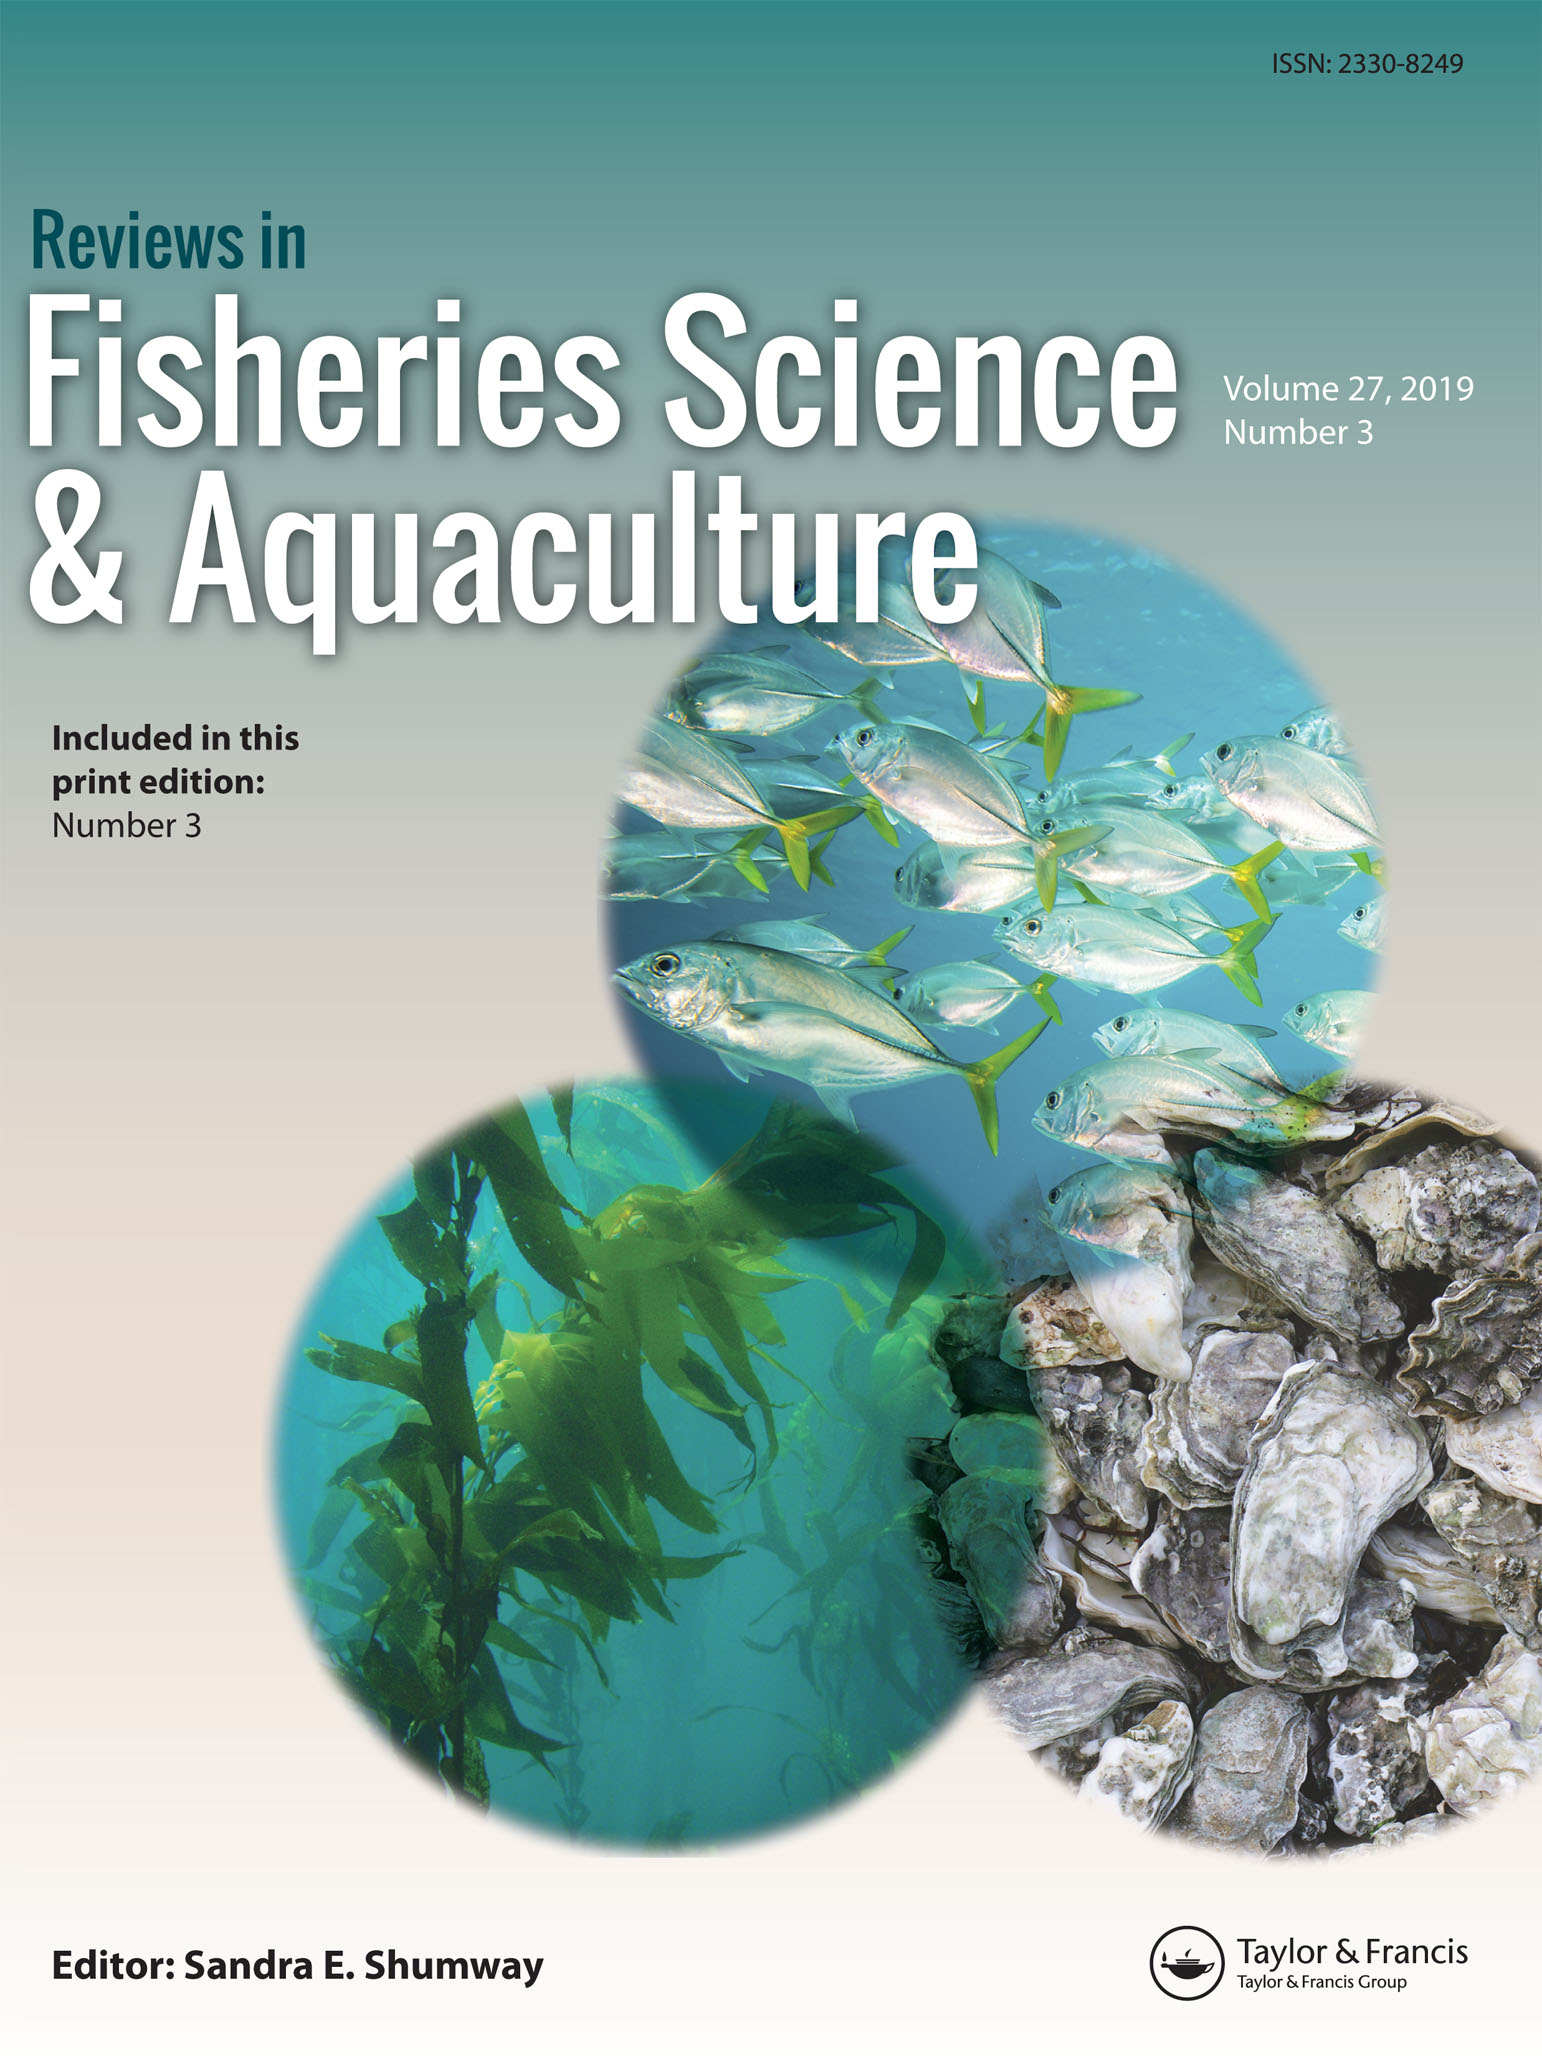 Reviews in Fisheries Science & Aquaculture: Vol 27, No 3